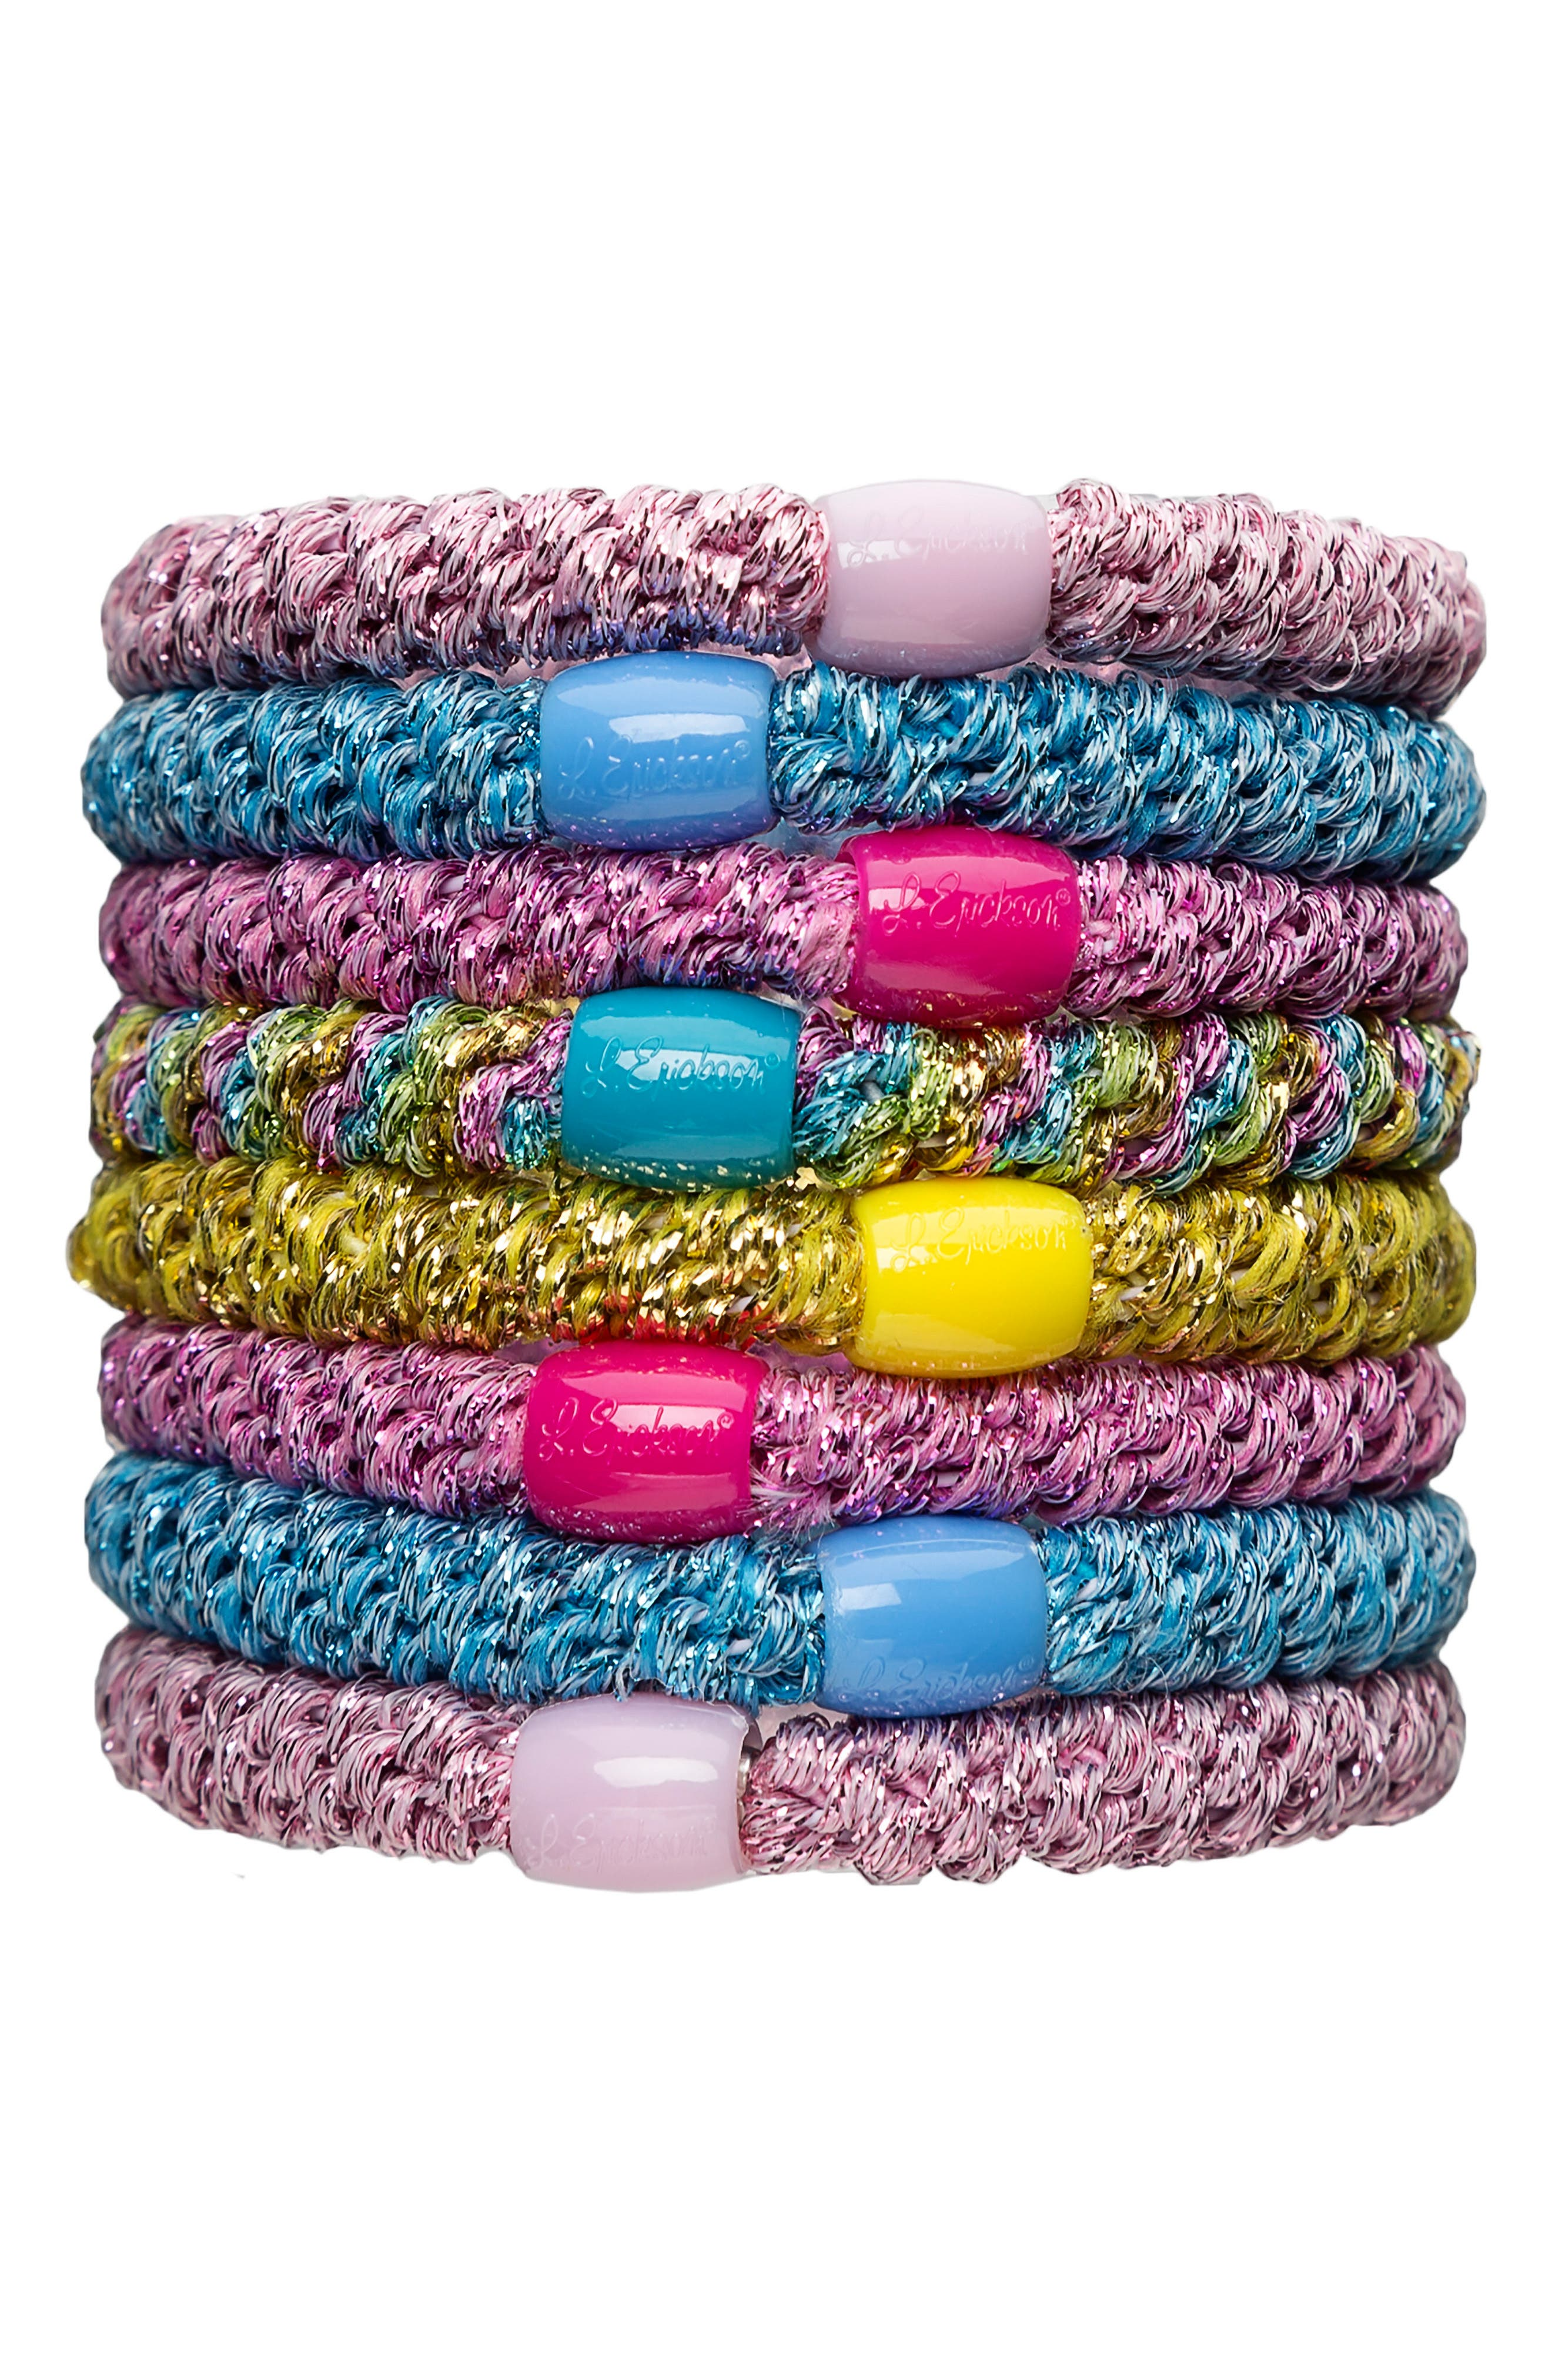 L. Erickson Ponytail Holders (Set of 8)